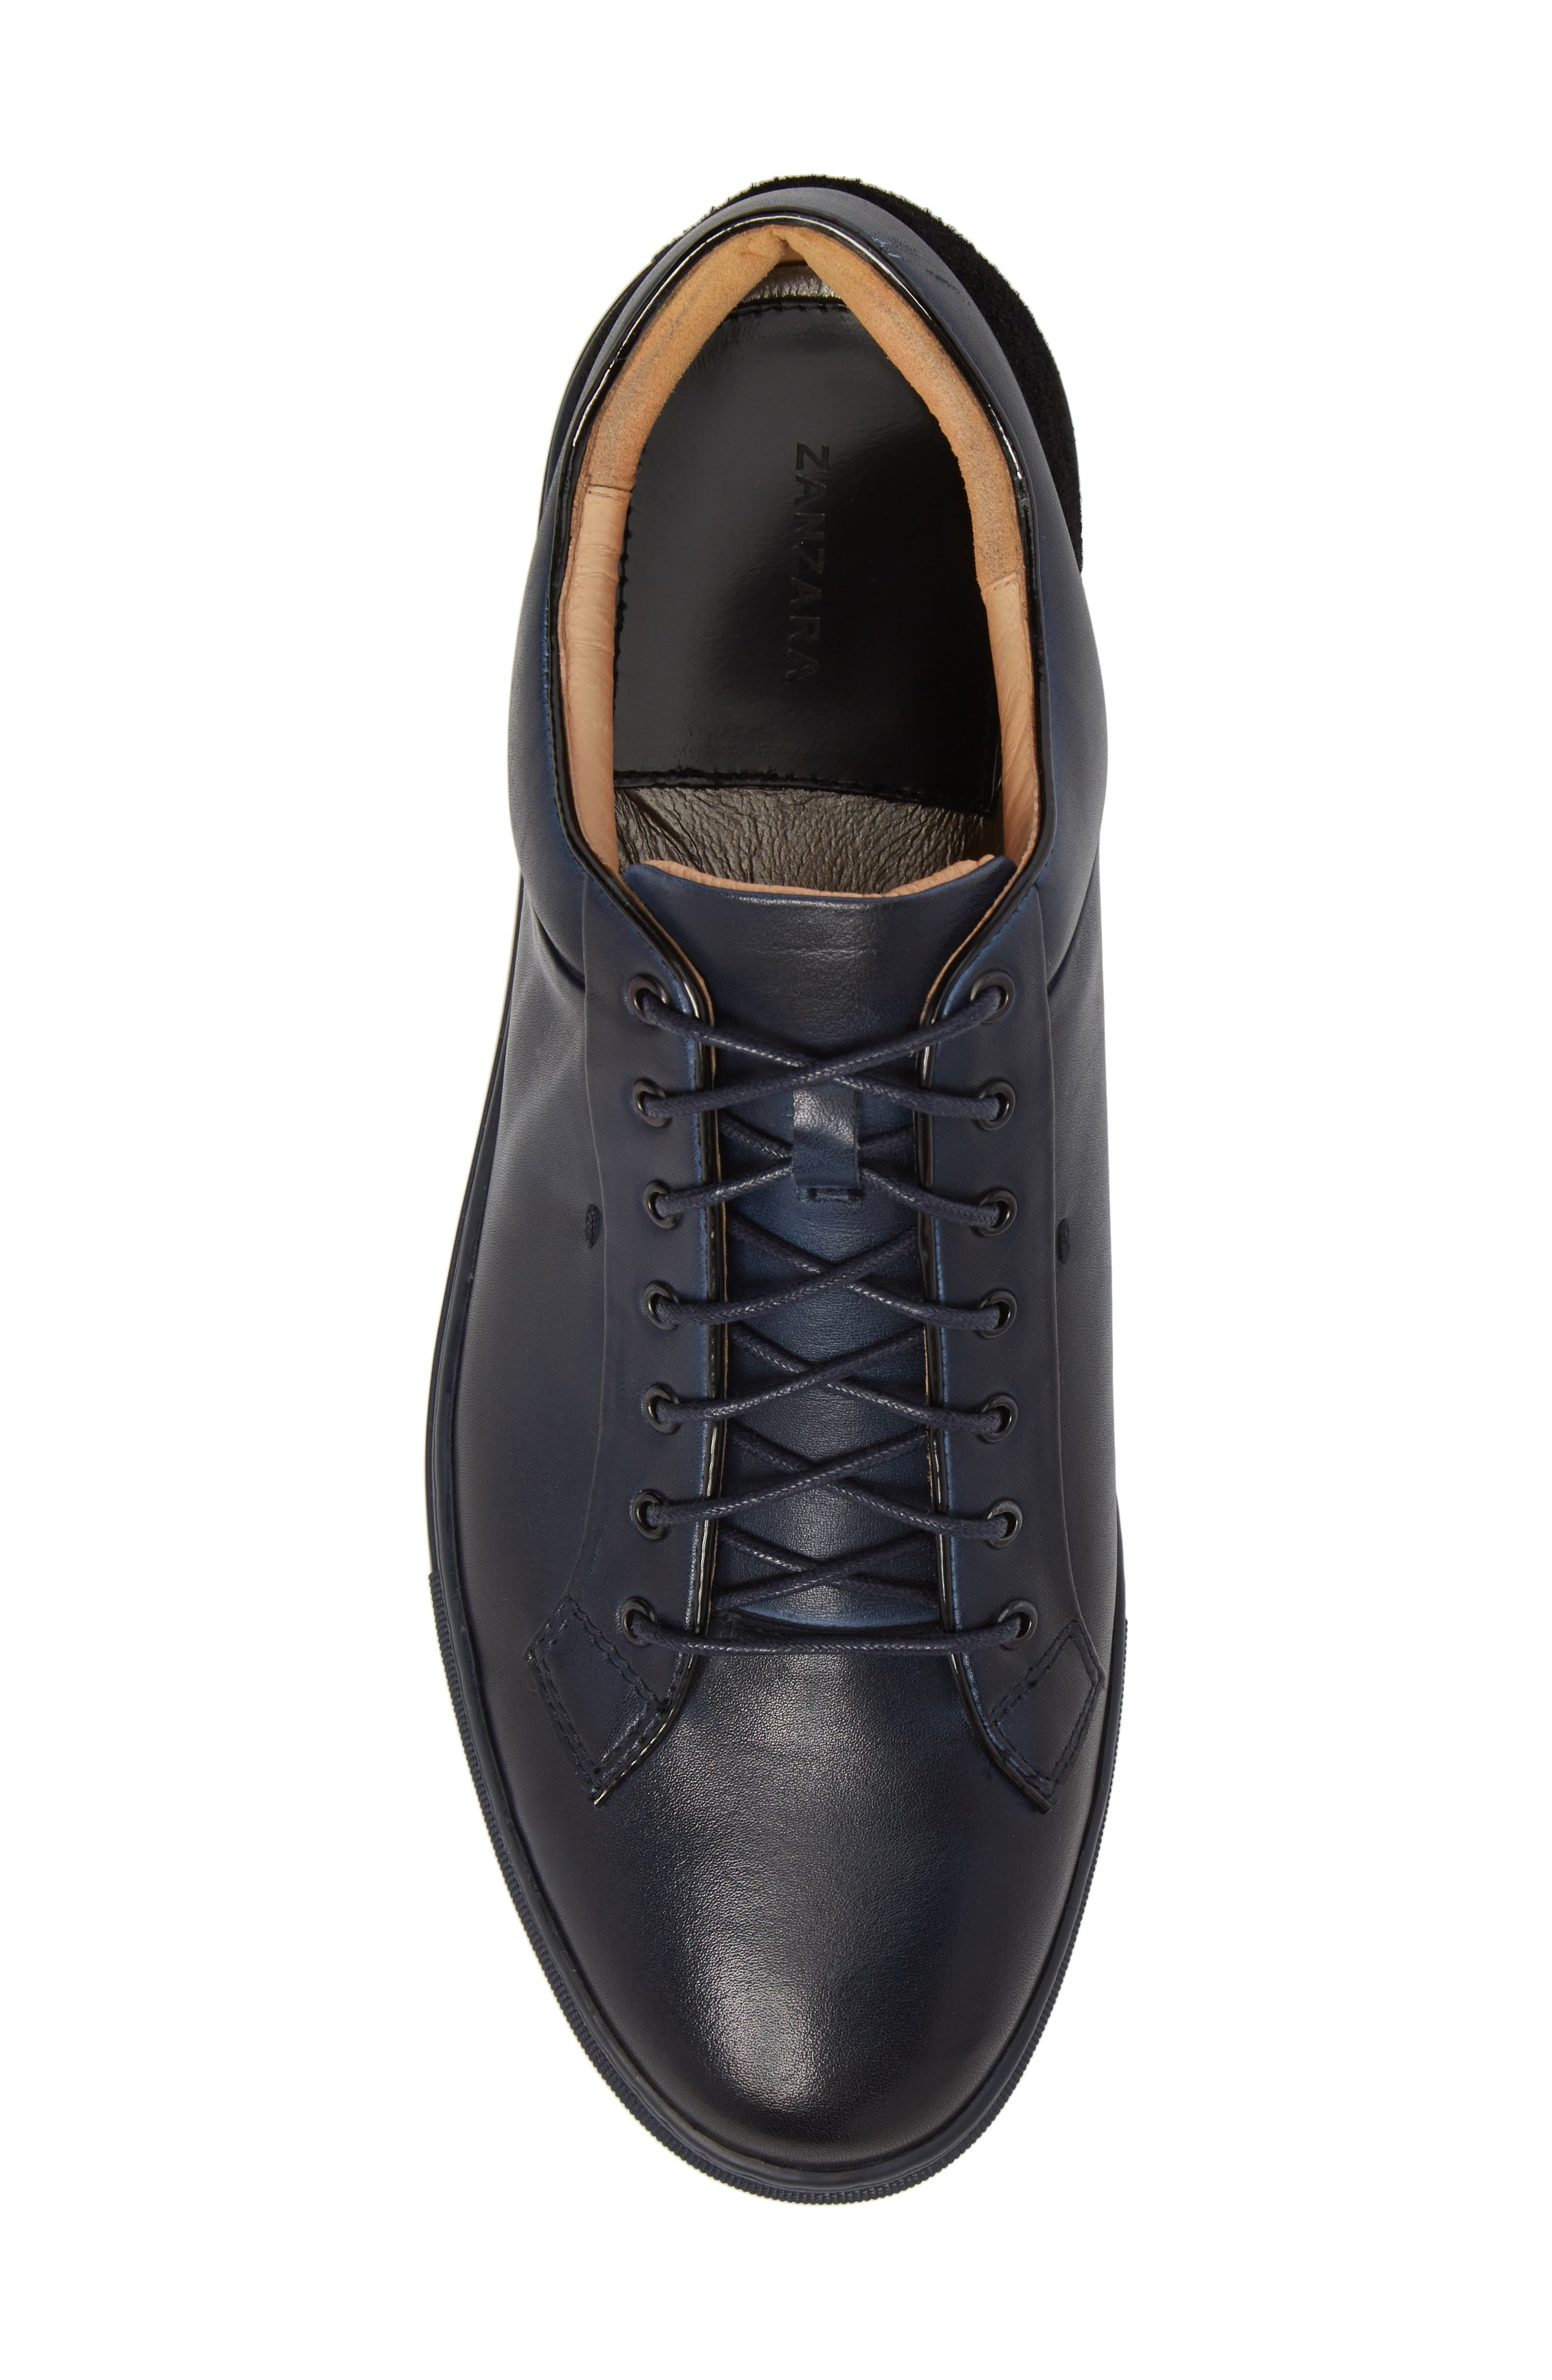 Pitch Low Top Sneaker,                             Alternate thumbnail 5, color,                             Navy Leather/ Suede